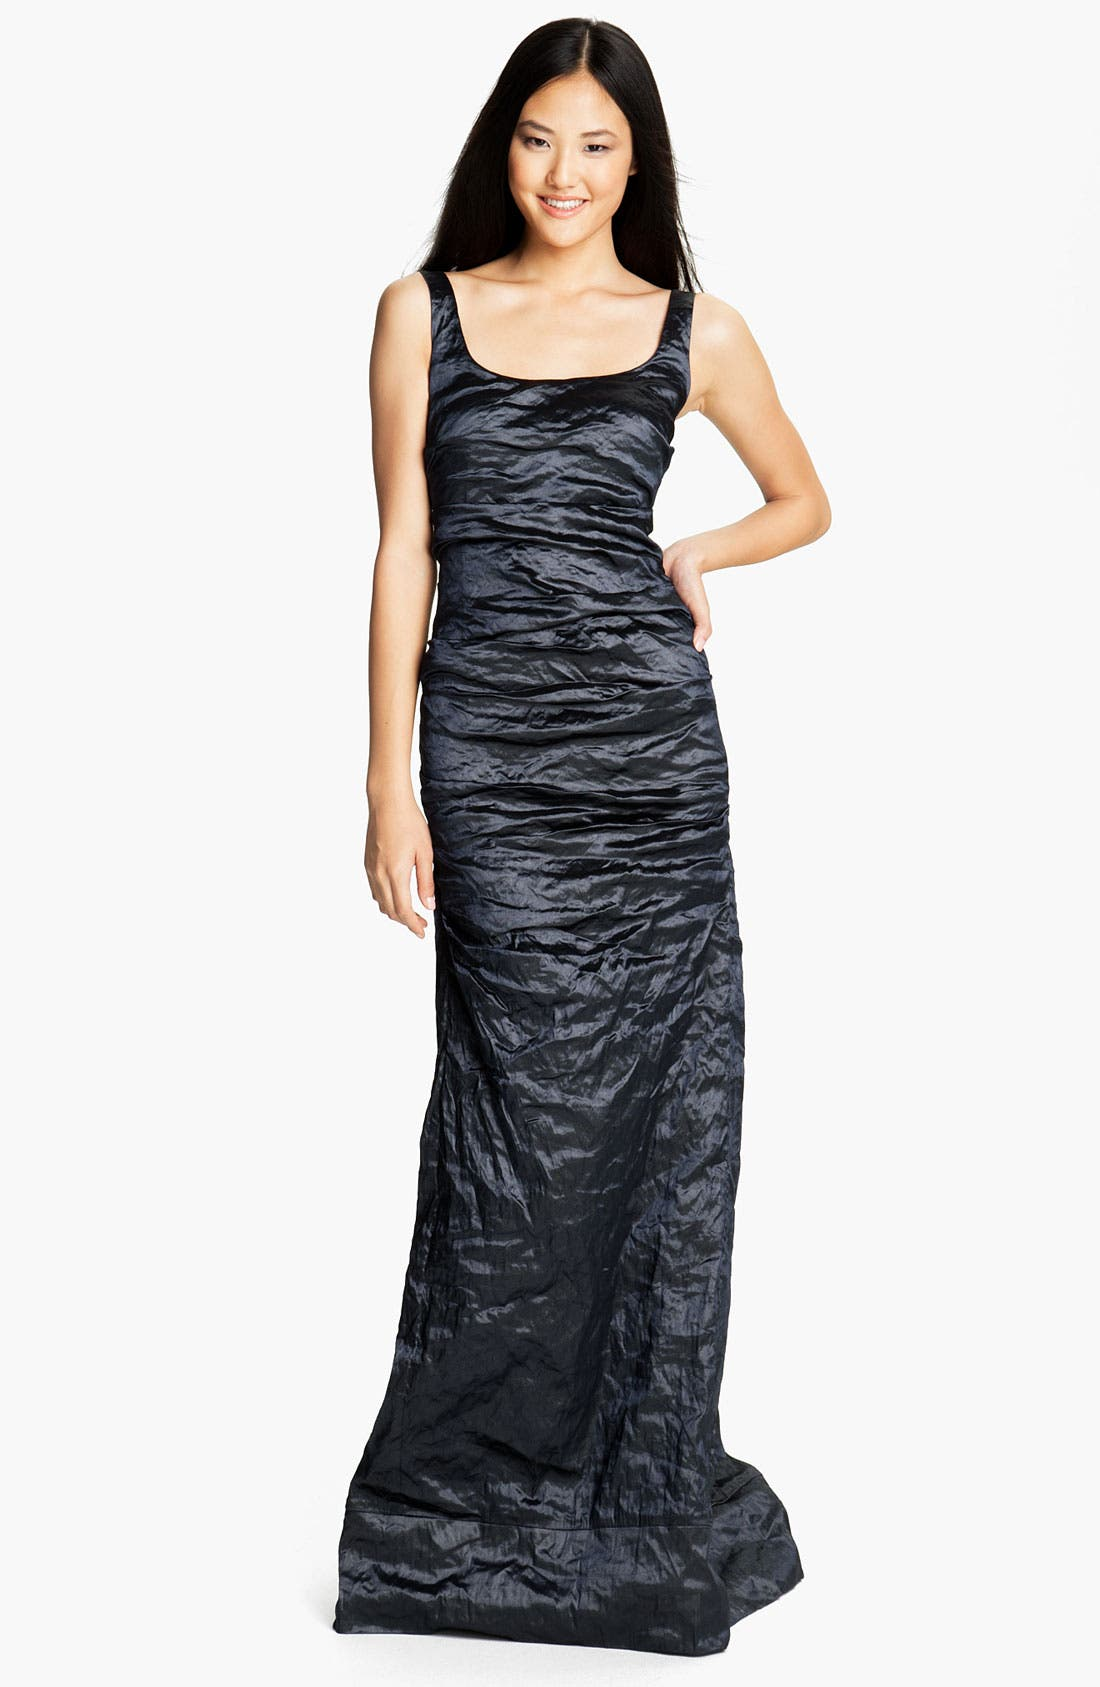 Alternate Image 1 Selected - Nicole Miller Metallic Textured Taffeta Gown